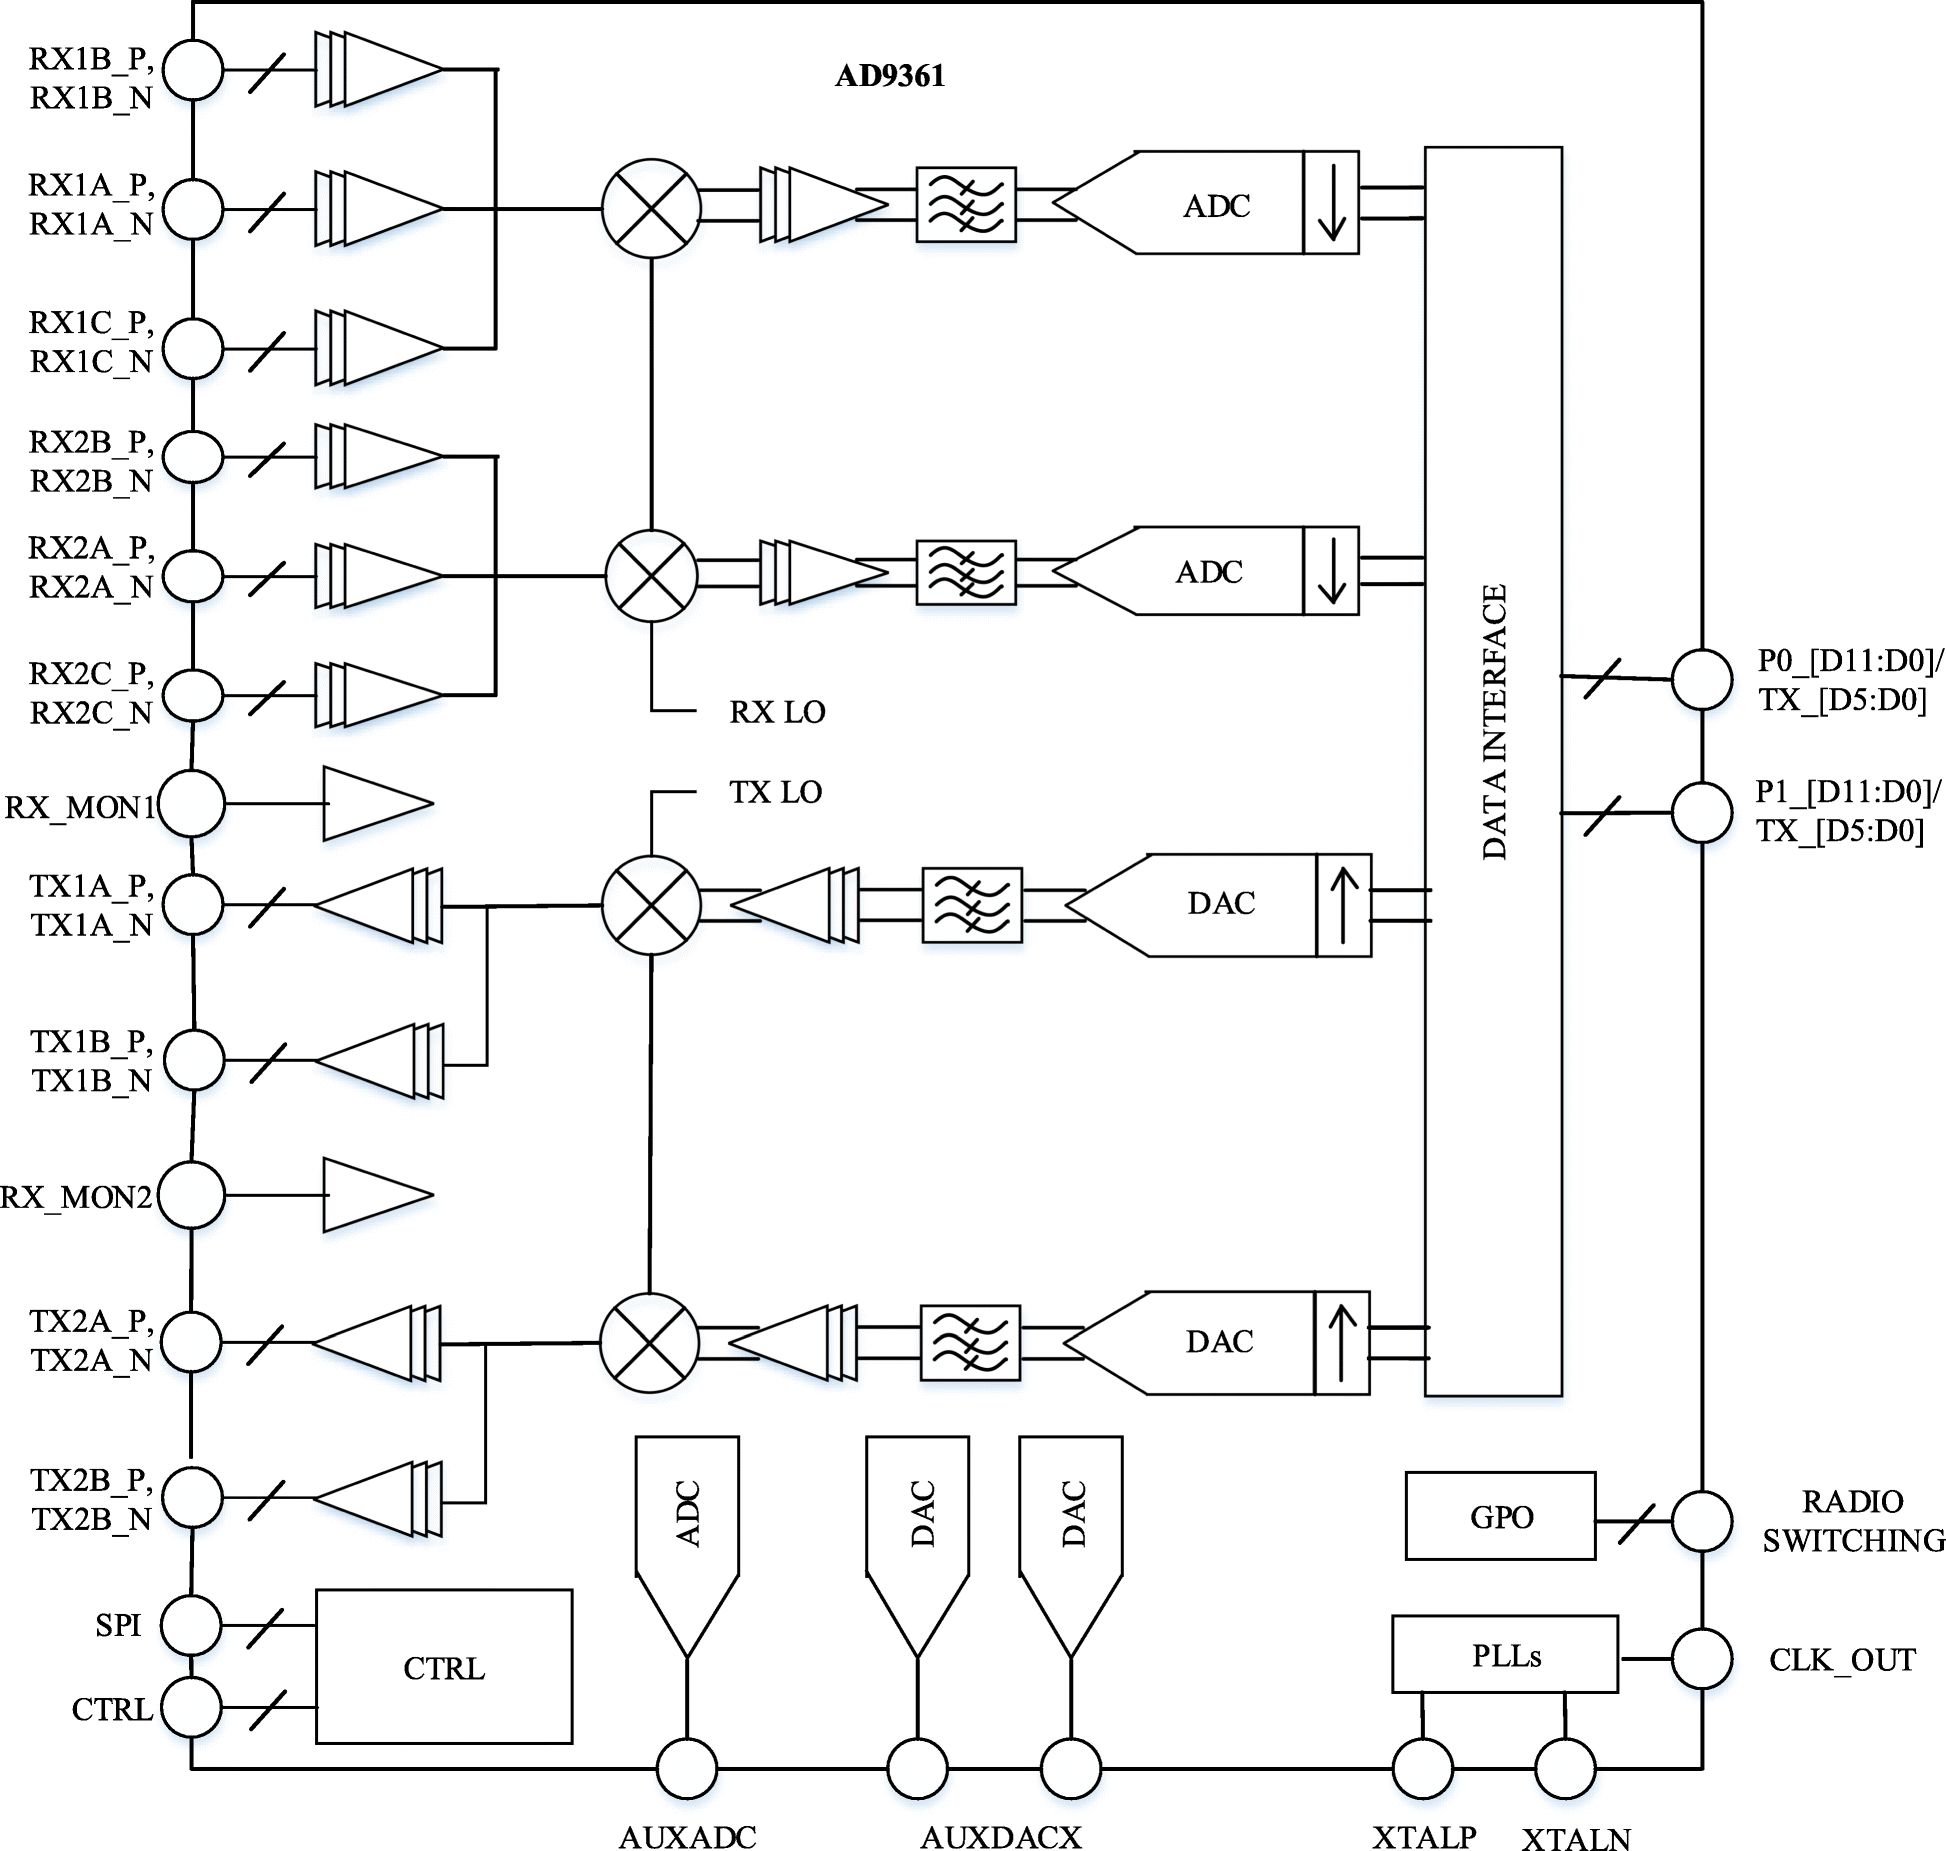 Design and implementation of AD9361-based software radio receiver